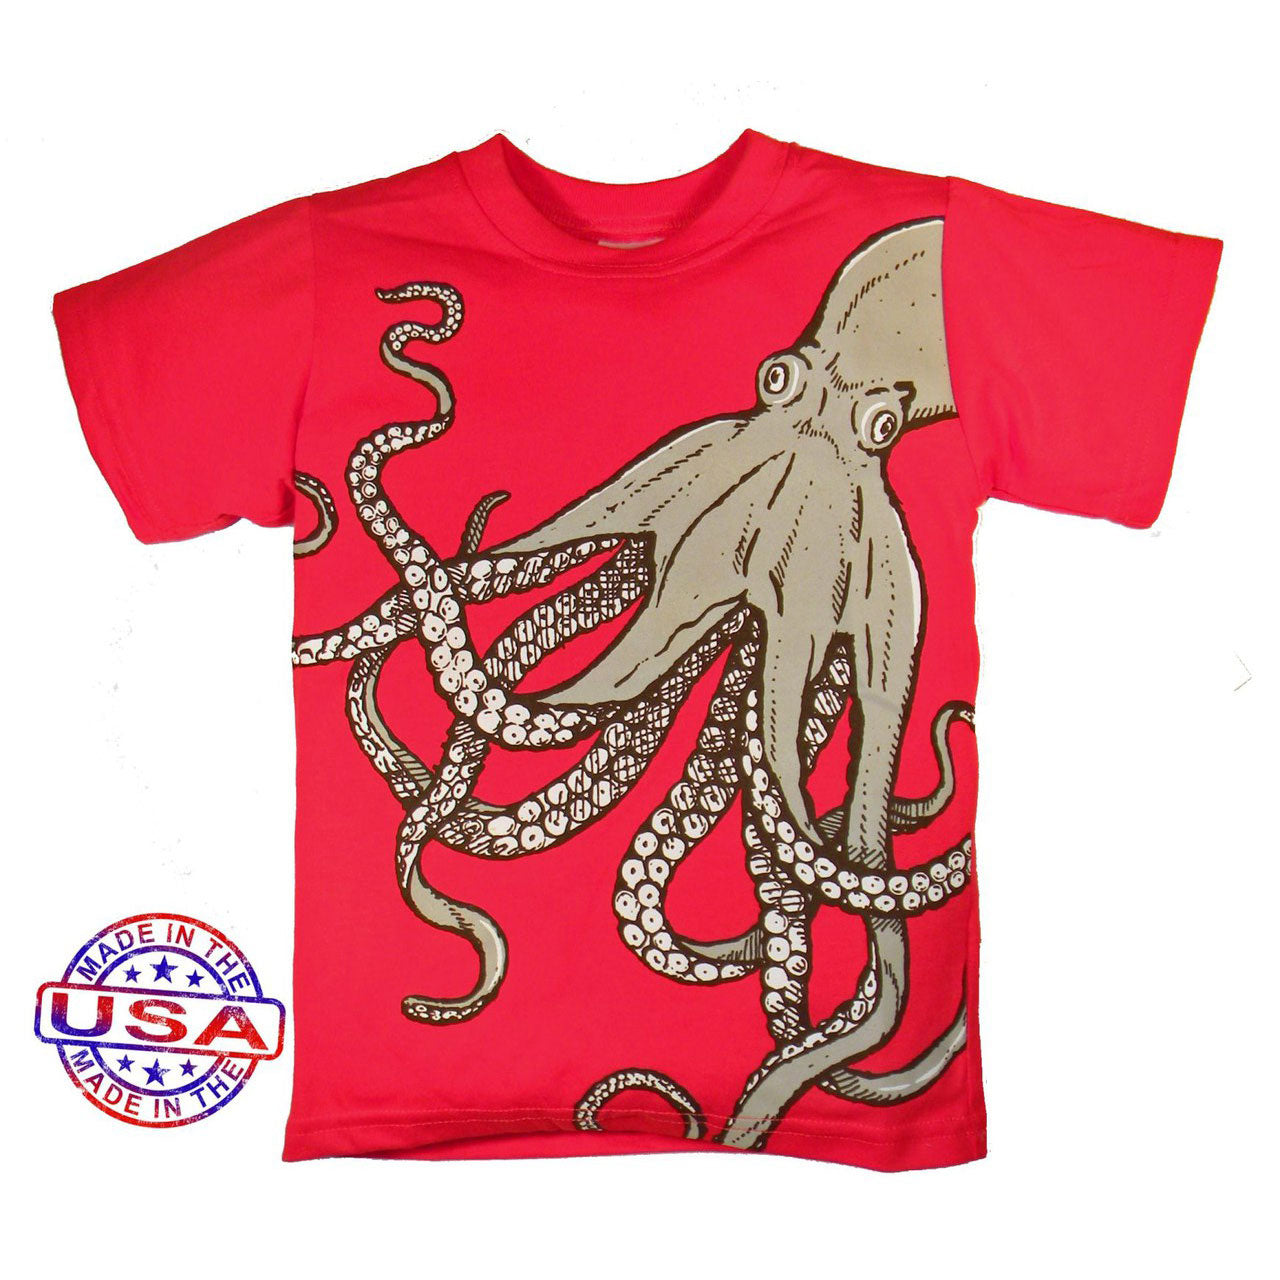 Boys' Octopus Shirt by Tumbleweed